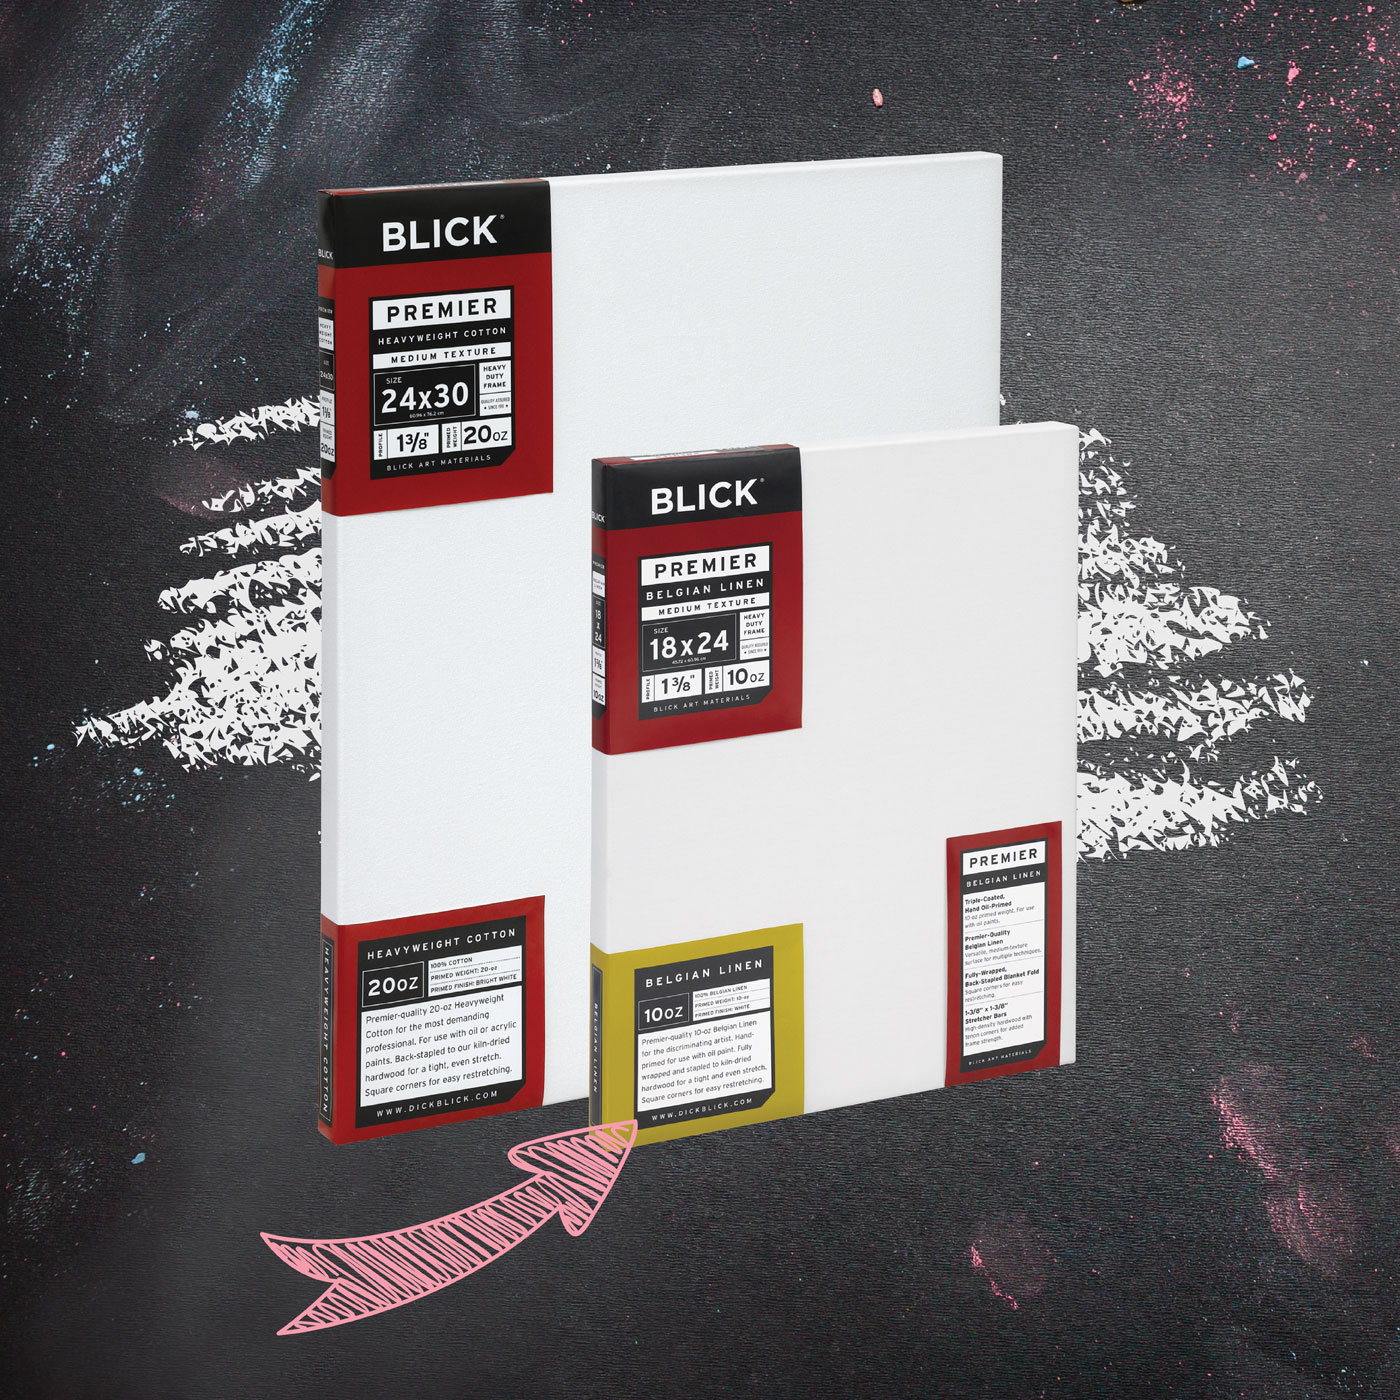 Back to the studio products from Blick